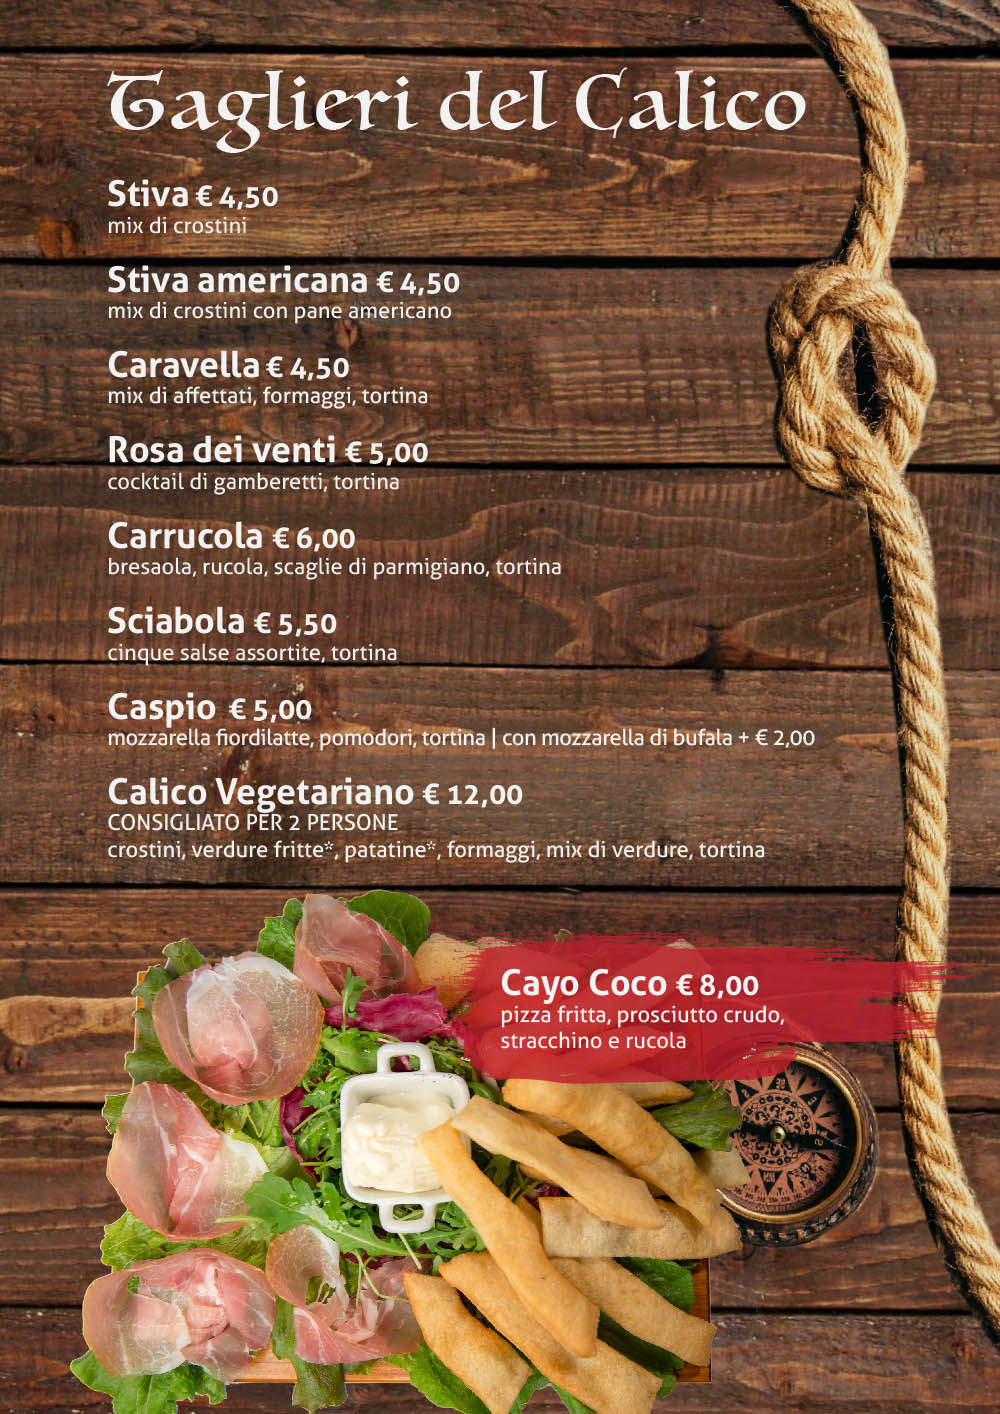 menu-calico_-carta-5